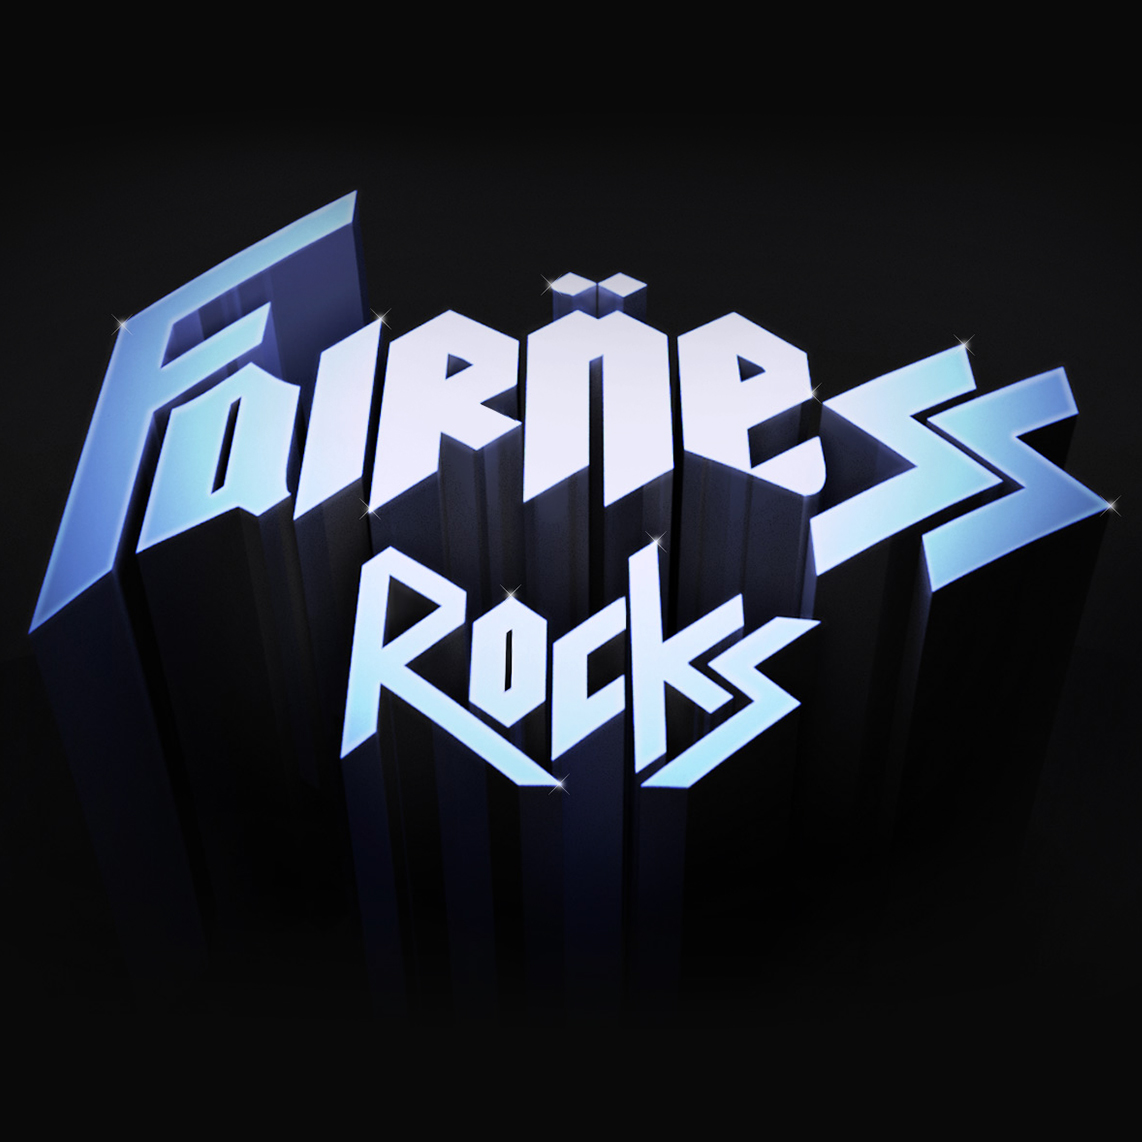 Fairness Rocks News Spinal Tap's Fairness Rocks platform has been renewed as a Campaign